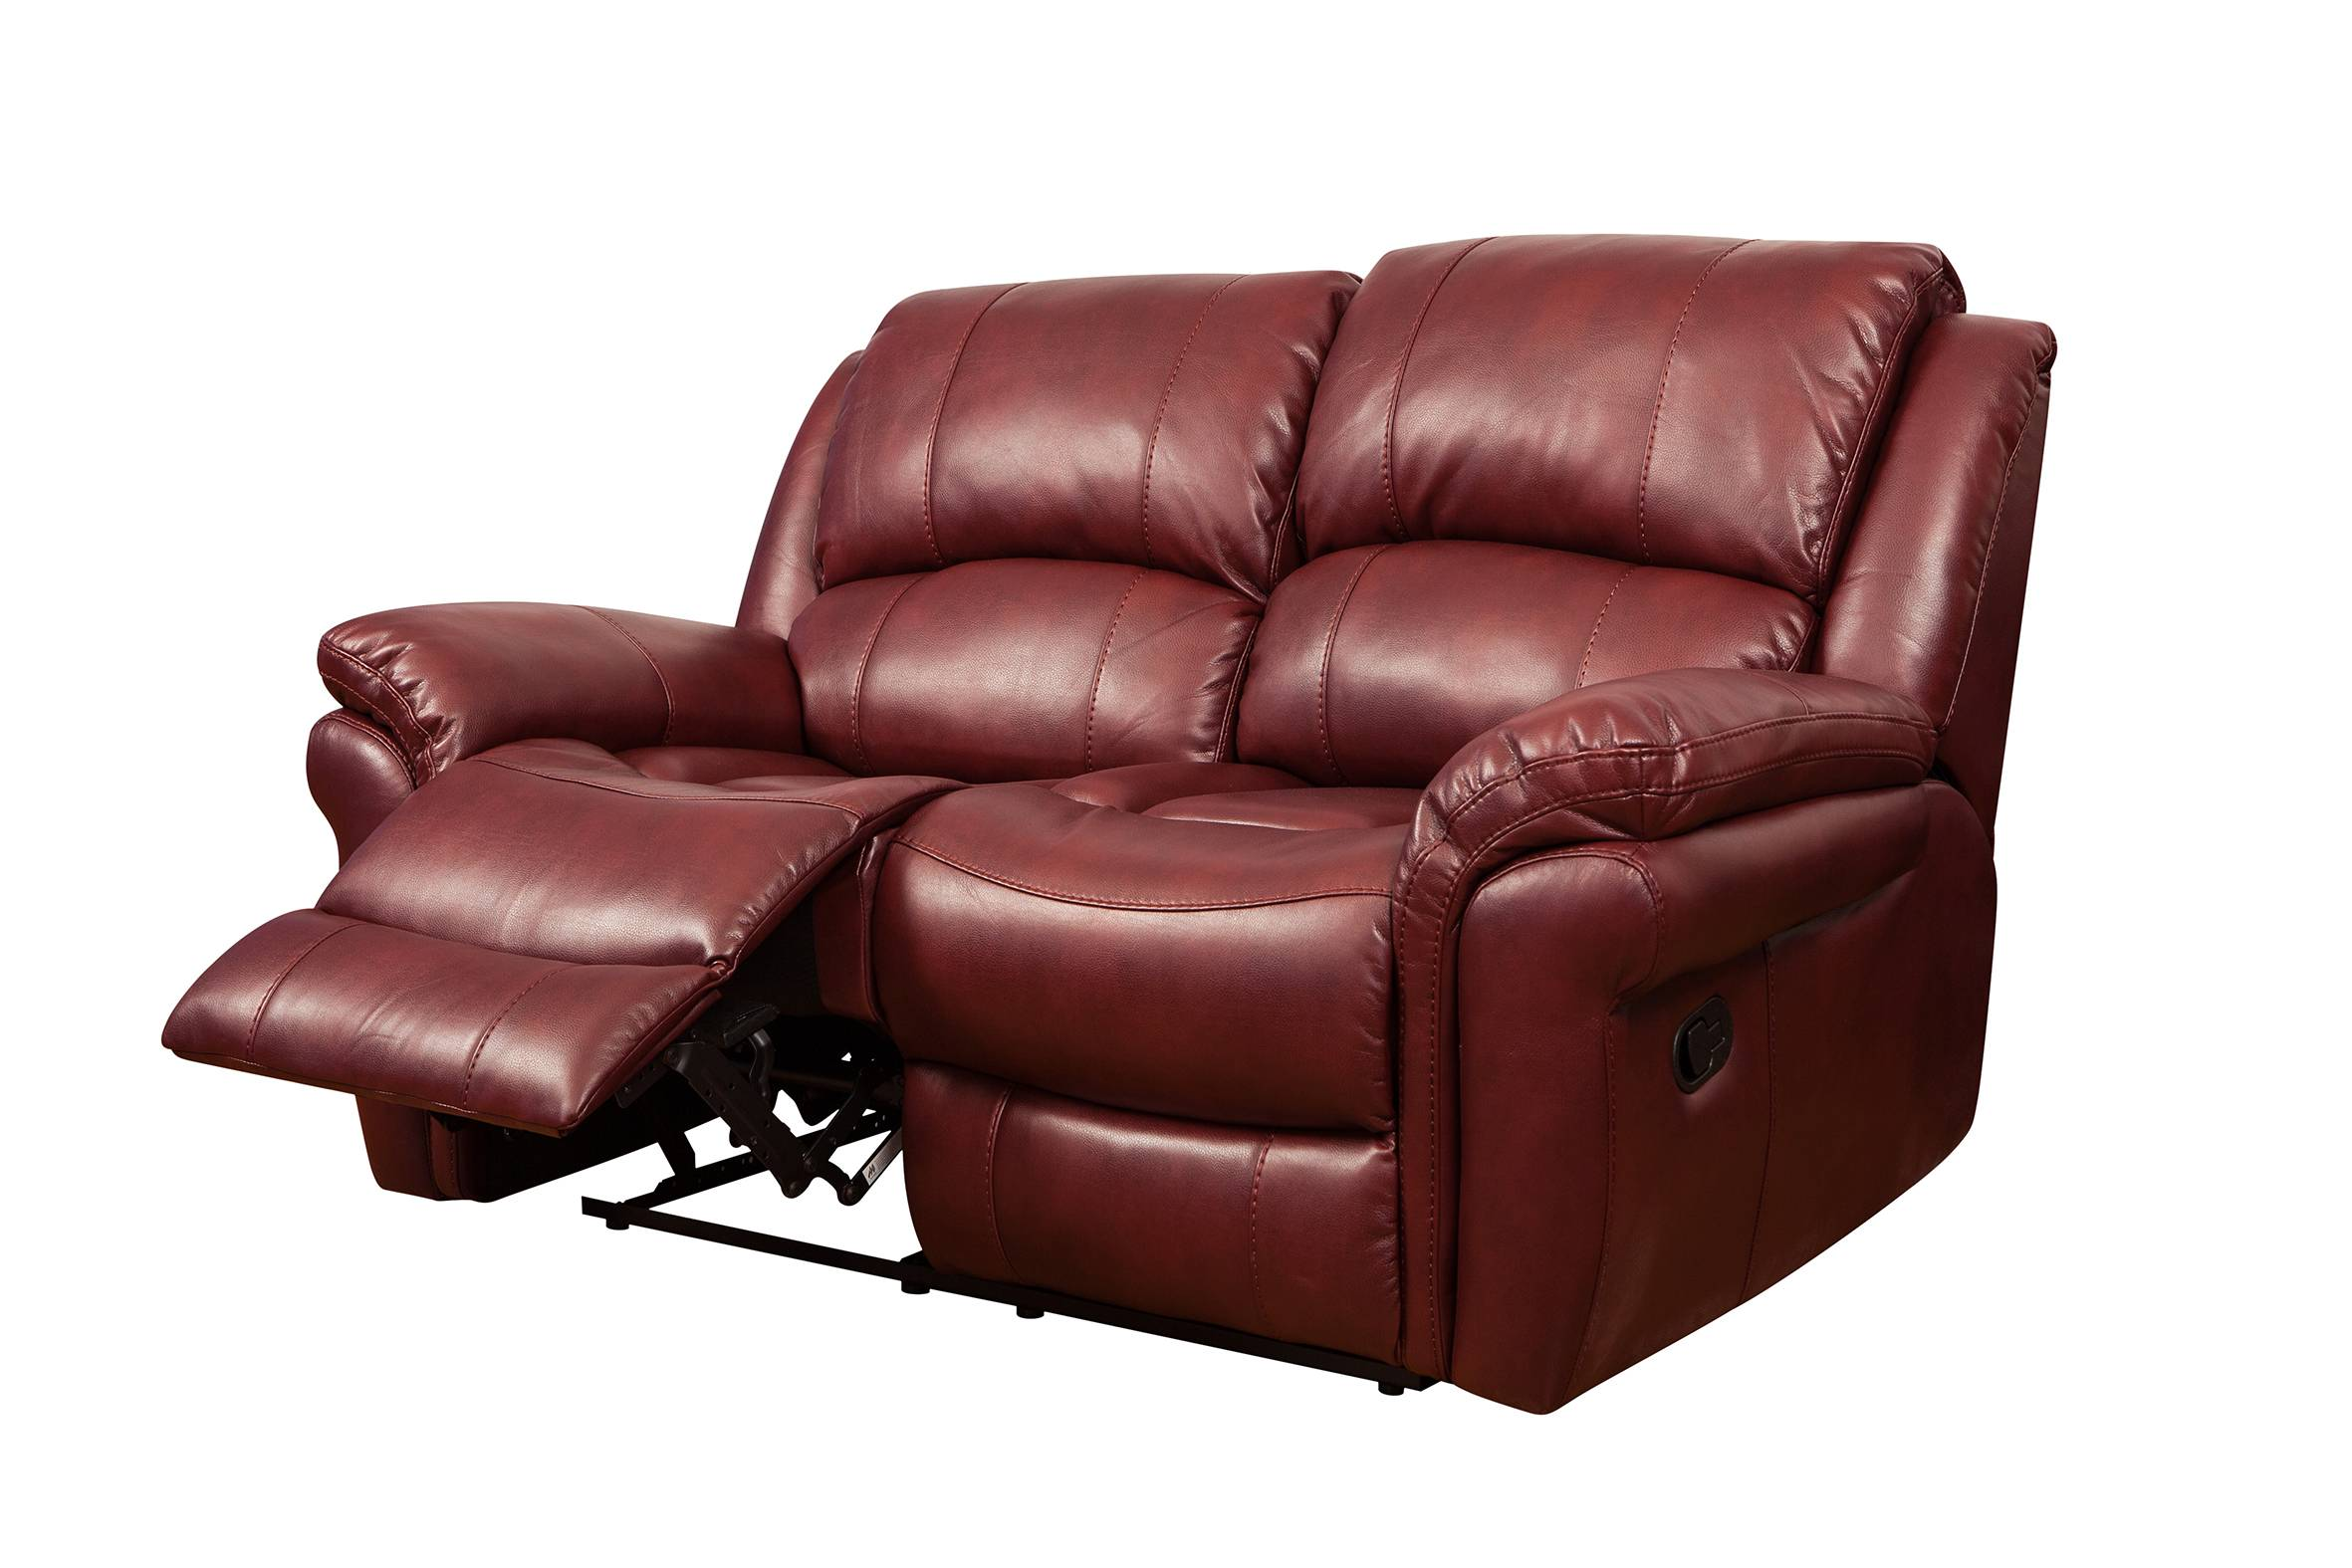 New creation healthy design top grade leather recliner sofa with massage